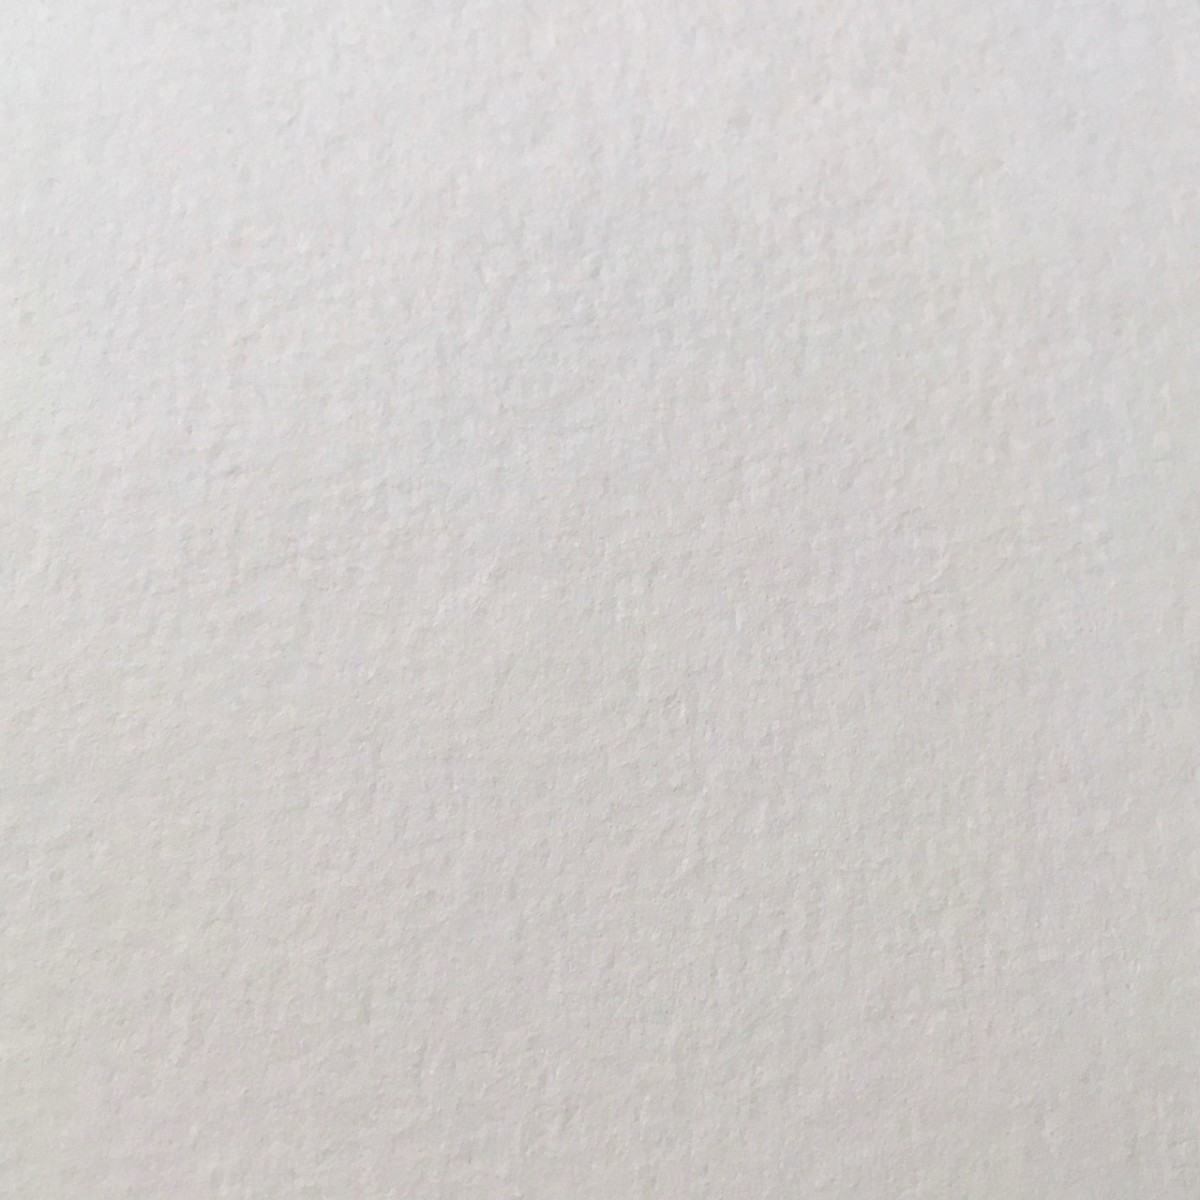 A close-up showing the texture of a sheet of cold-pressed watercolor paper